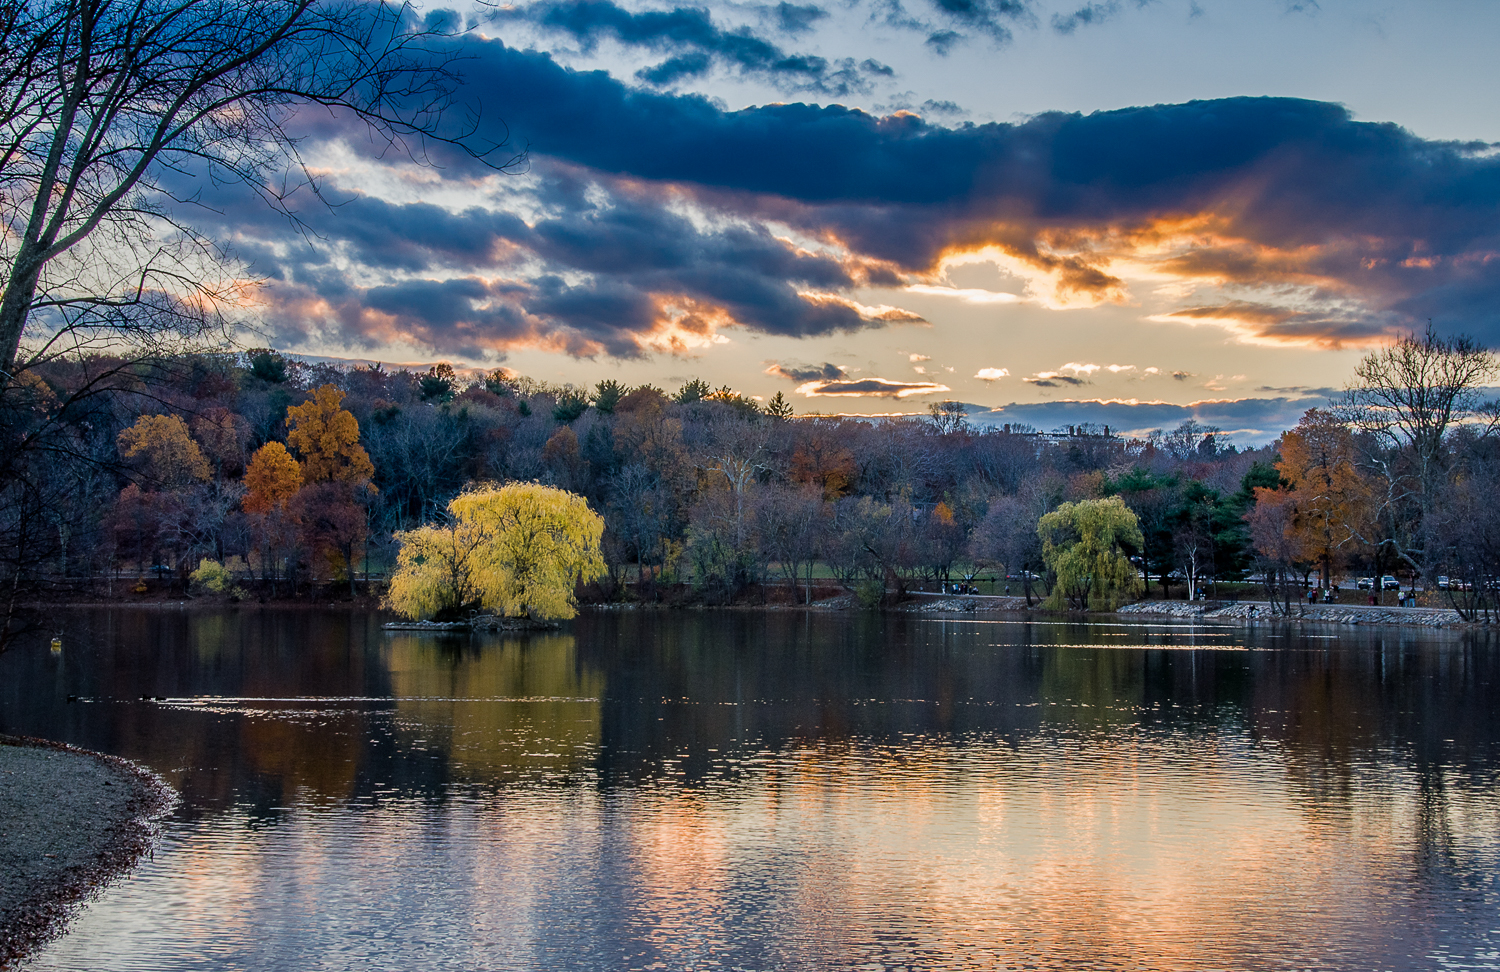 Jamaica Pond island at sunset